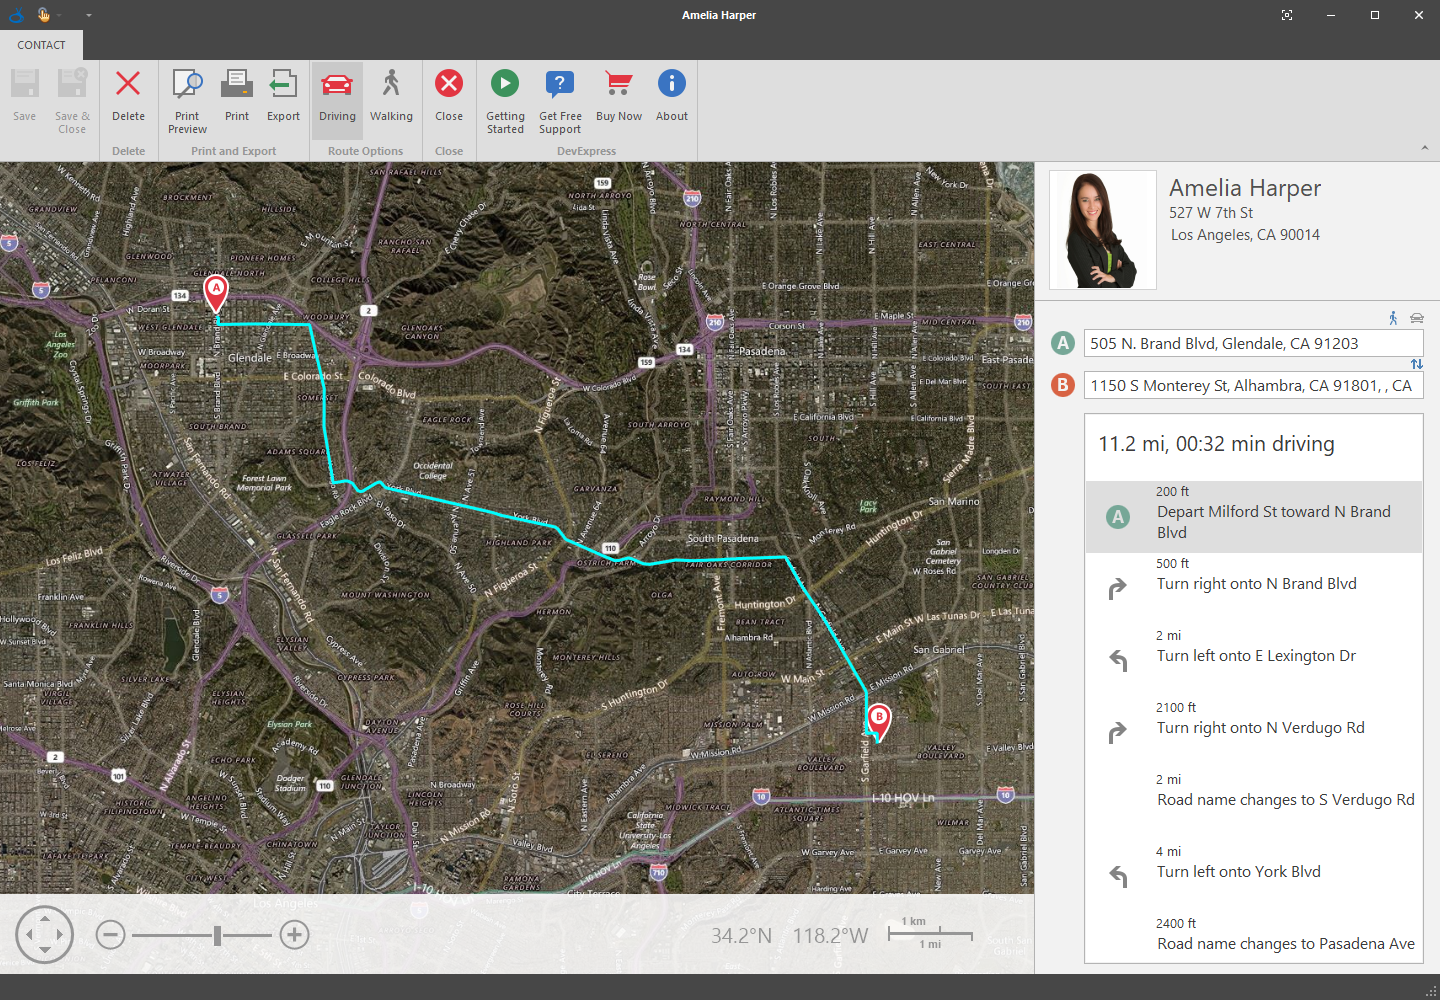 Office Inspired Application with Bing Maps